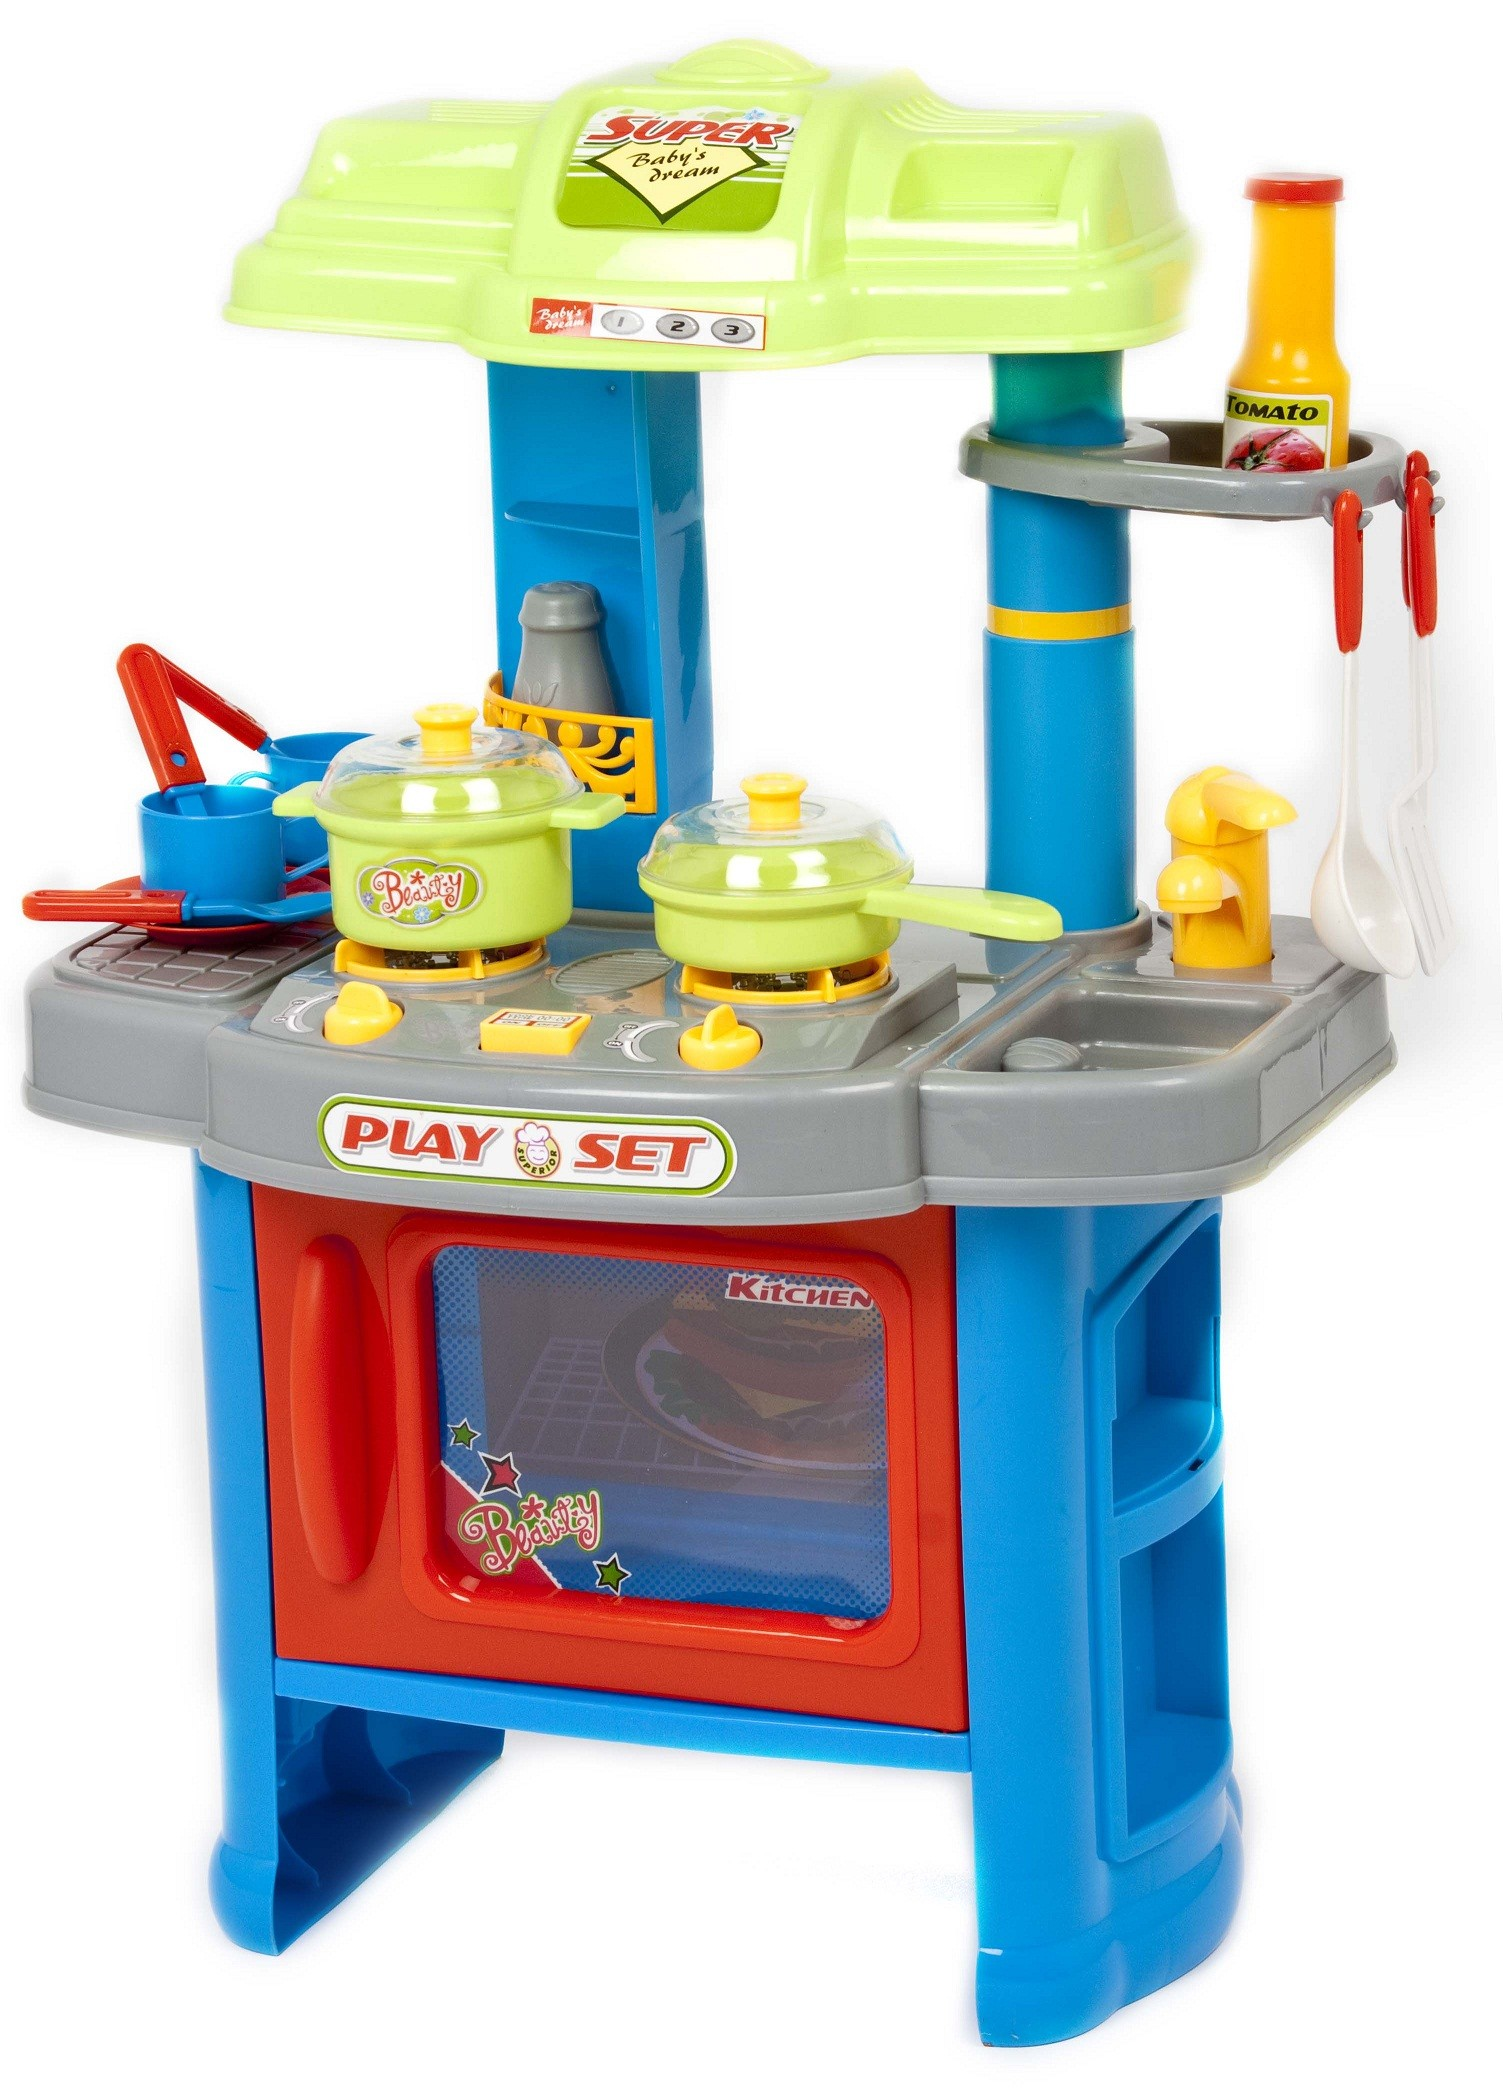 29 piece electronic kitchen cooking children 39 s play set for Kitchen set 008 58